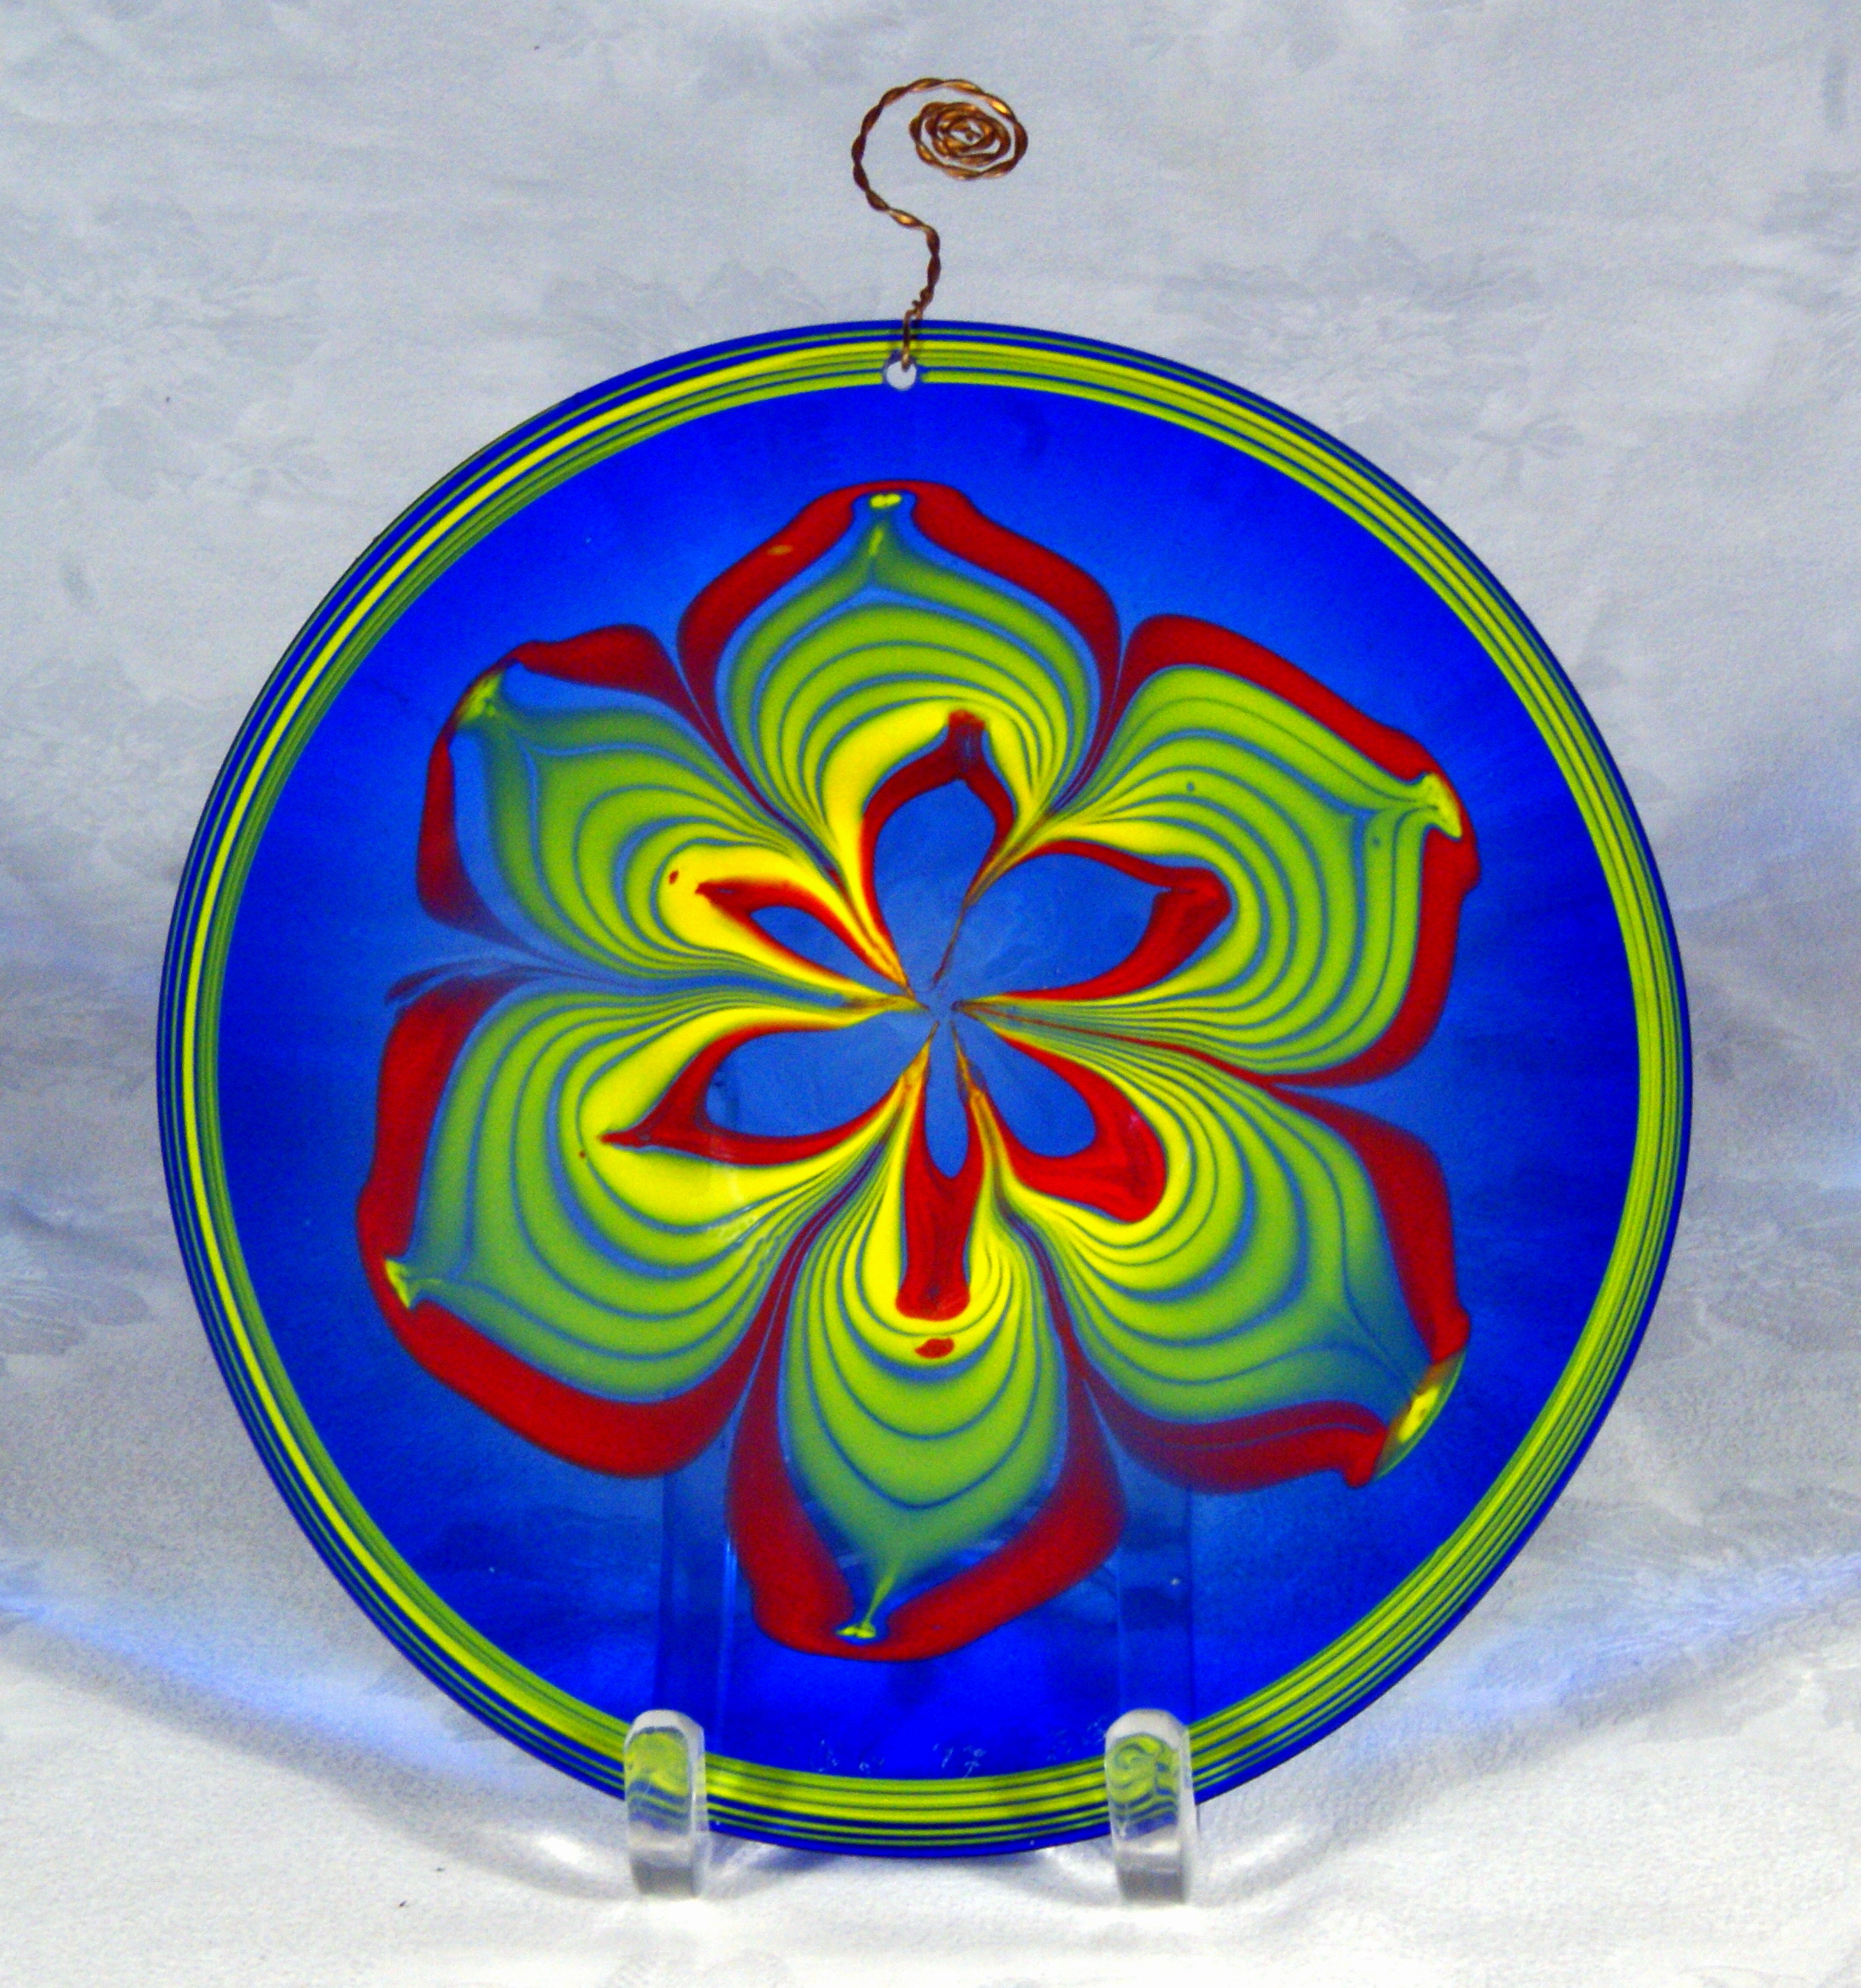 FrogPond Glass Works - A mixture of artistic eye candy and functional every day or special occasion items and gifts